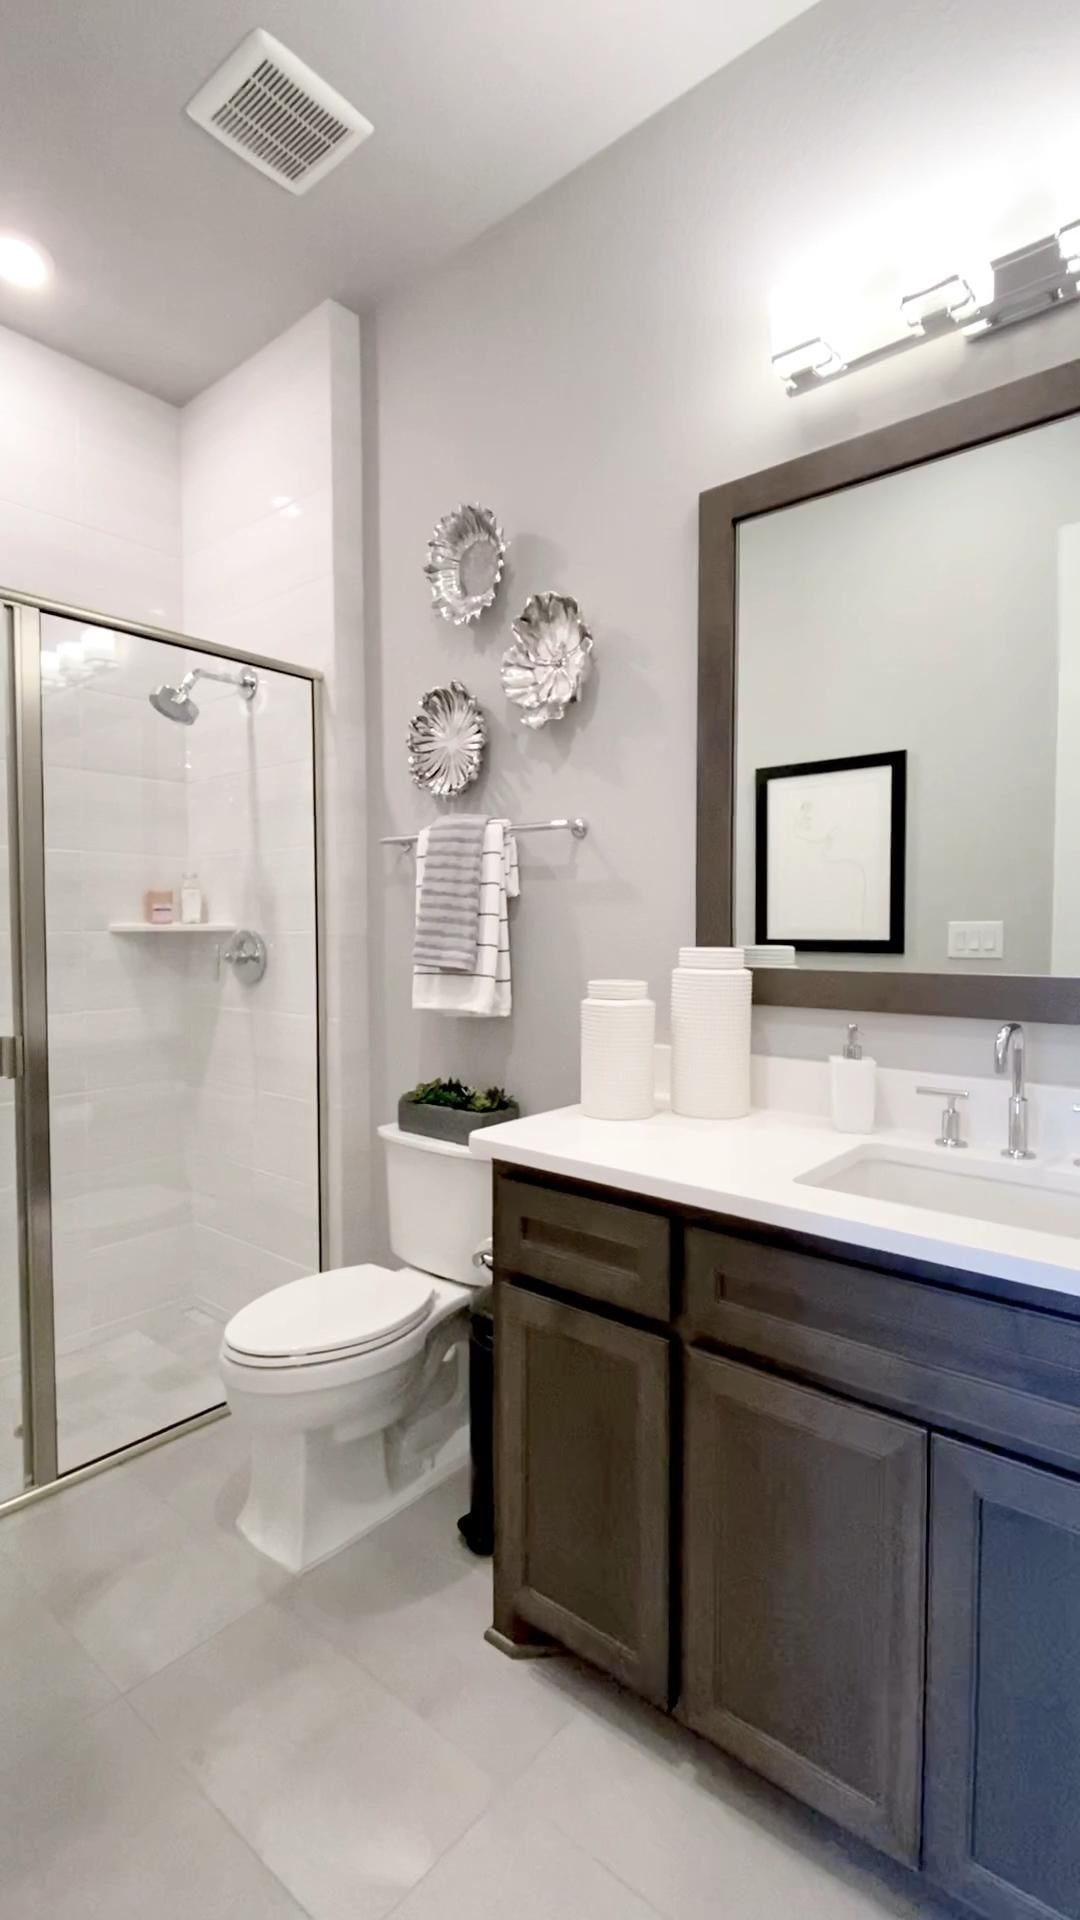 Bathroom design with dark stained cabinetry